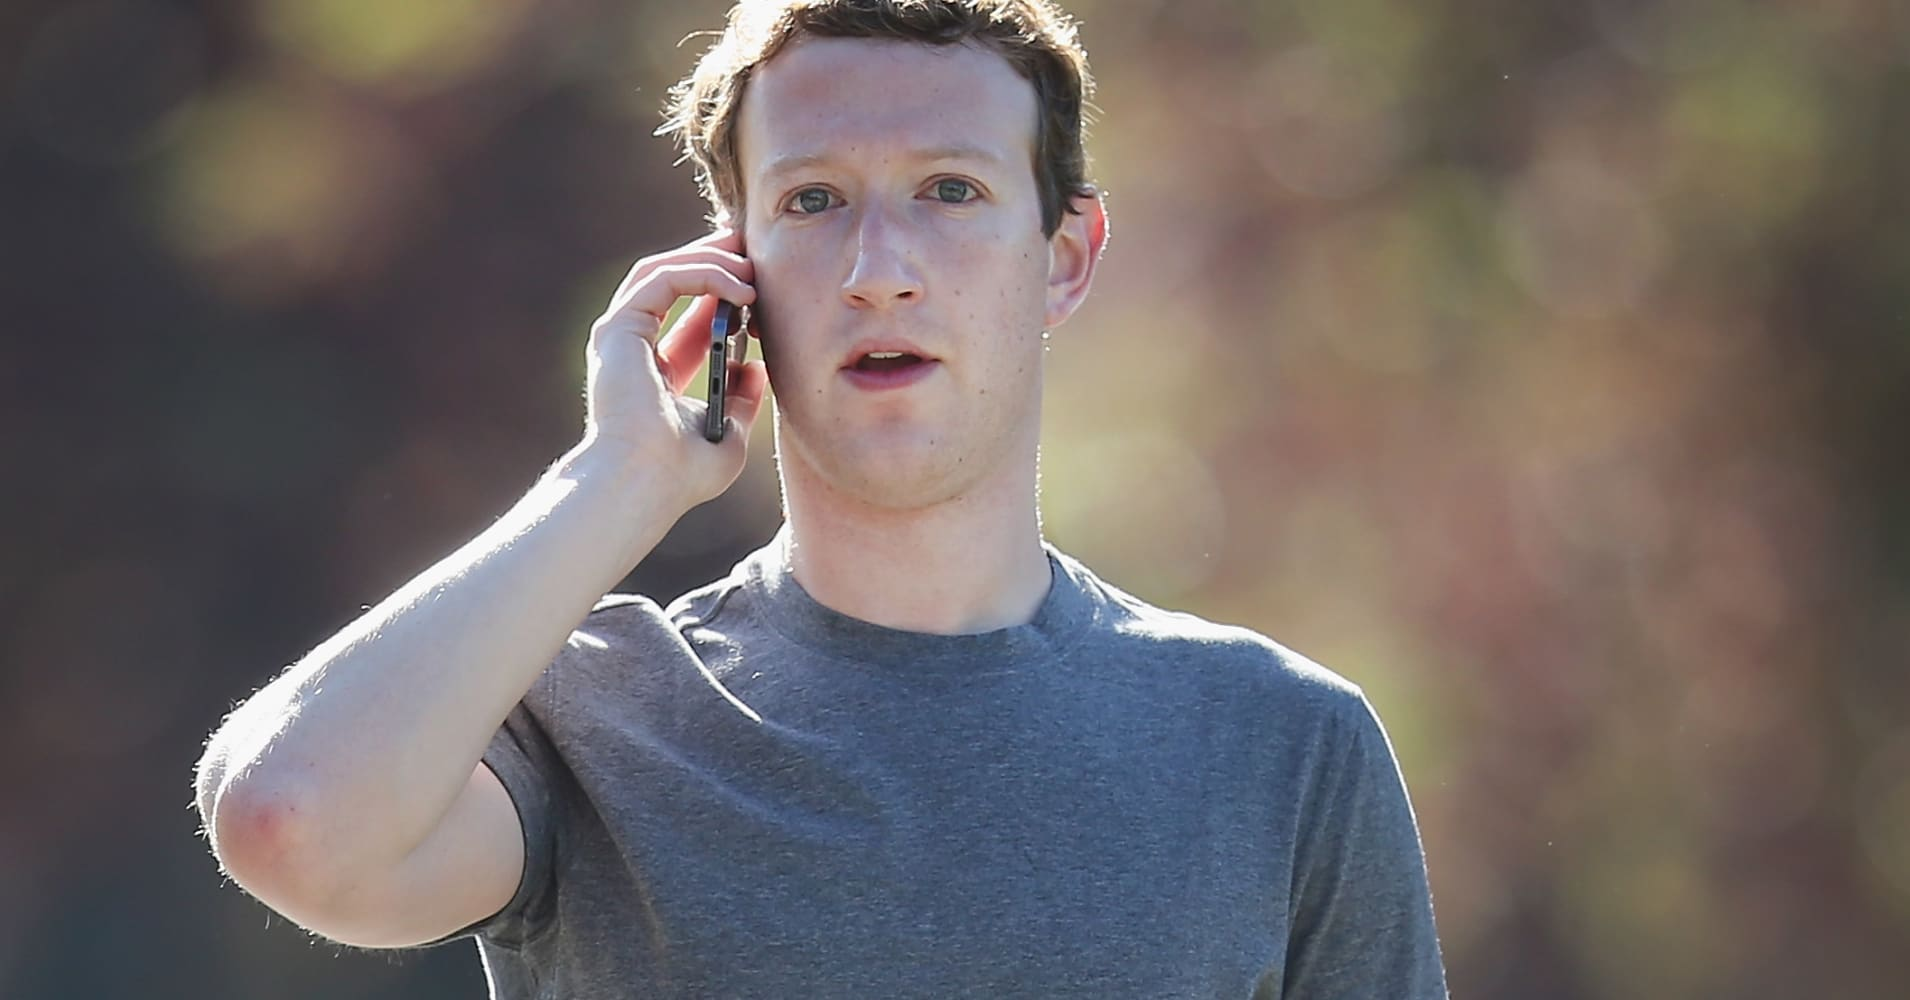 Mark Zuckerberg stole WhatsApp from under Tencent's nose while its CEO was sick, says report